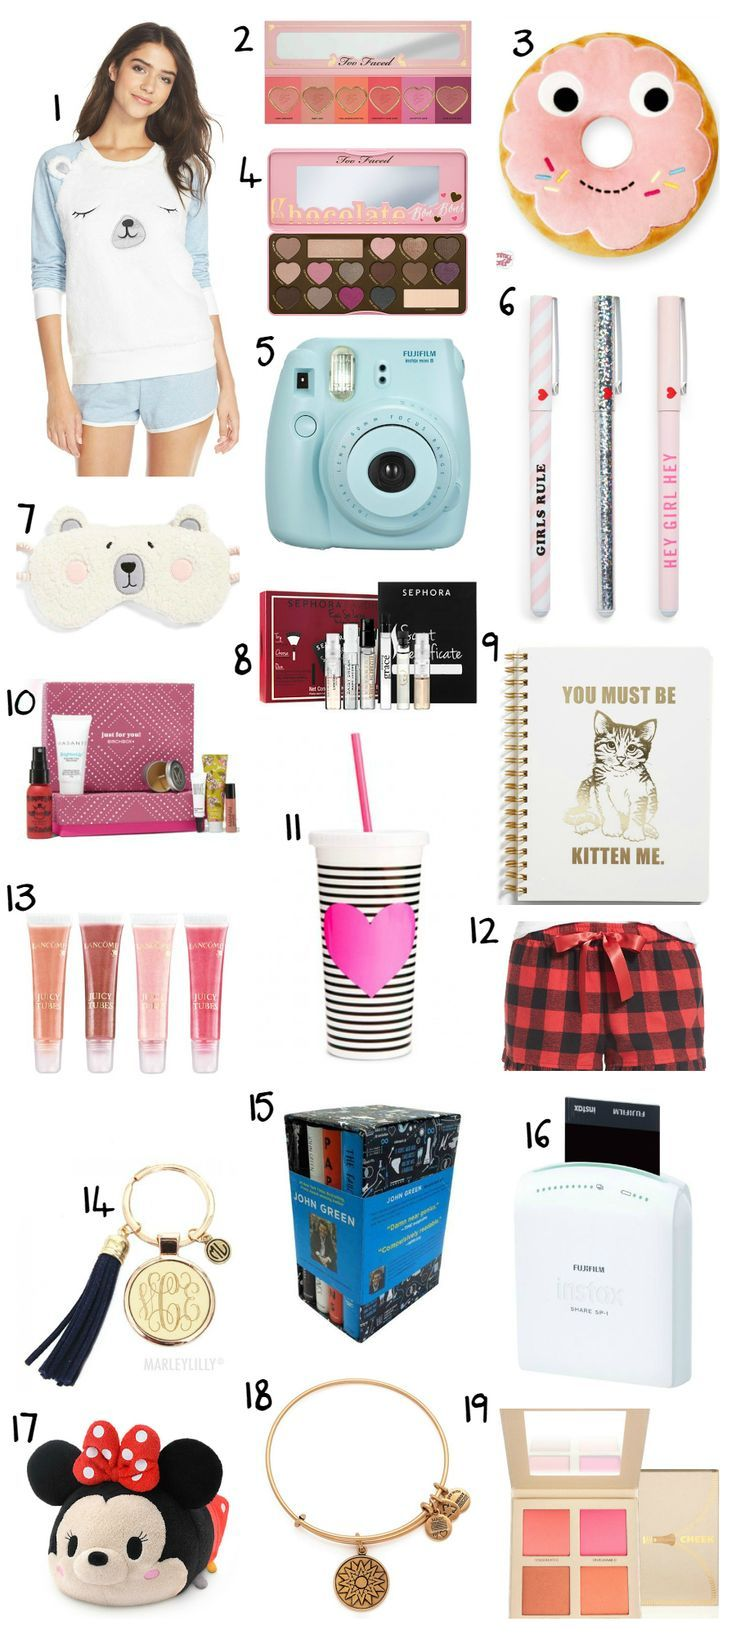 This post features over 30 of the BEST Christmas gift ideas for teens! The ultimate Christmas gift guide for teen girls by blogger Ashley Brooke Nicholas | Christmas gifts, gift ideas, gifts for teens, best gift ideas, affordable Christmas gifts